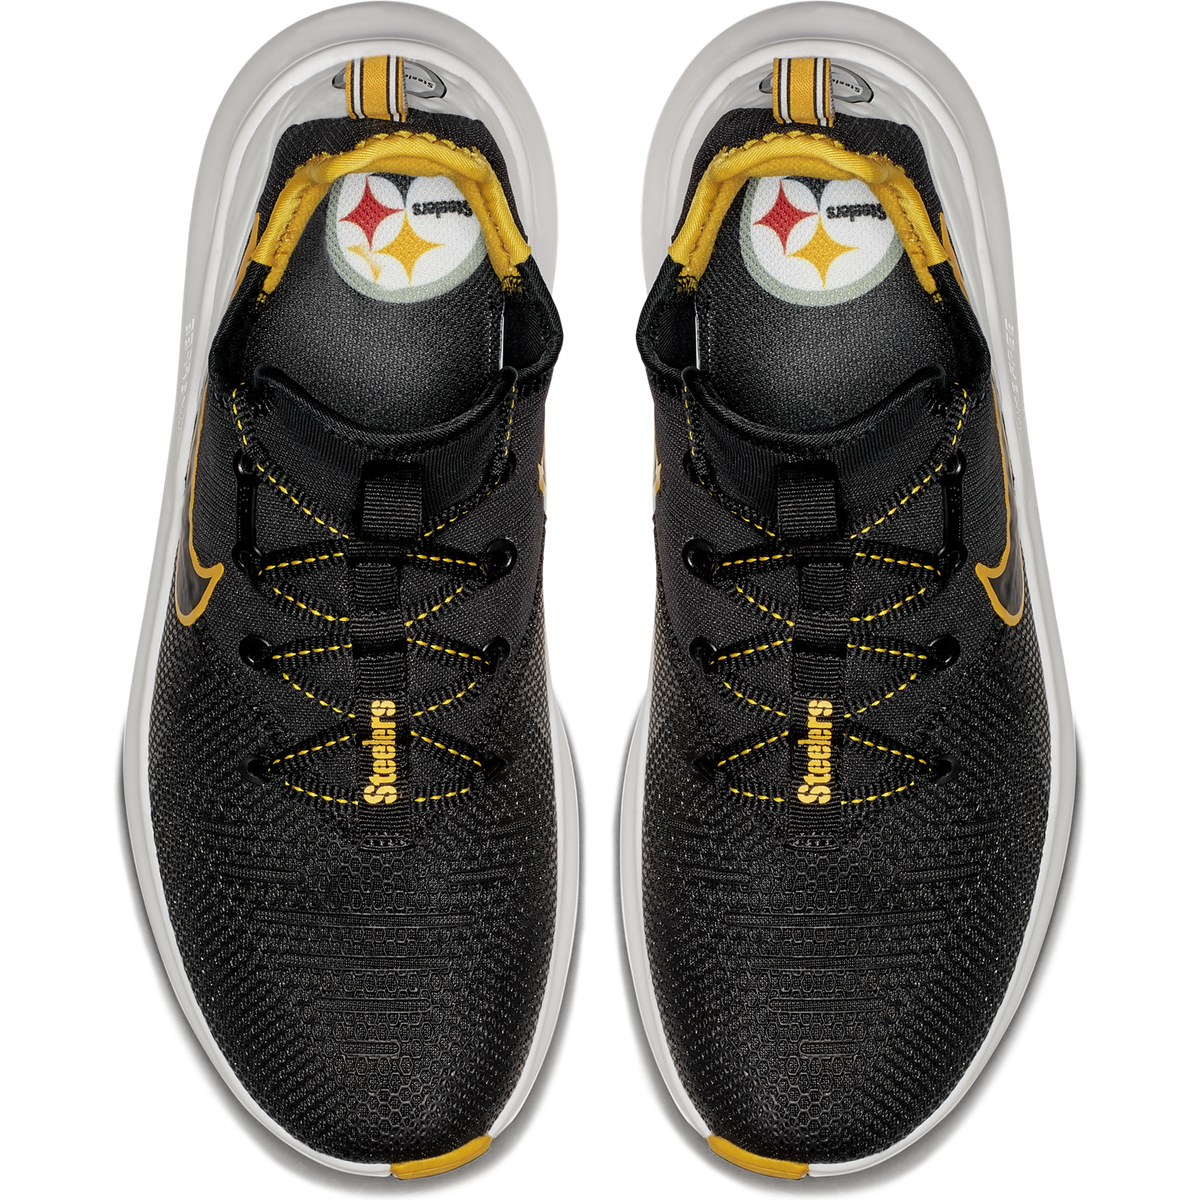 893fbf6979b Nike releases new NFL-themed Air Max Typha 2 shoe collection ...